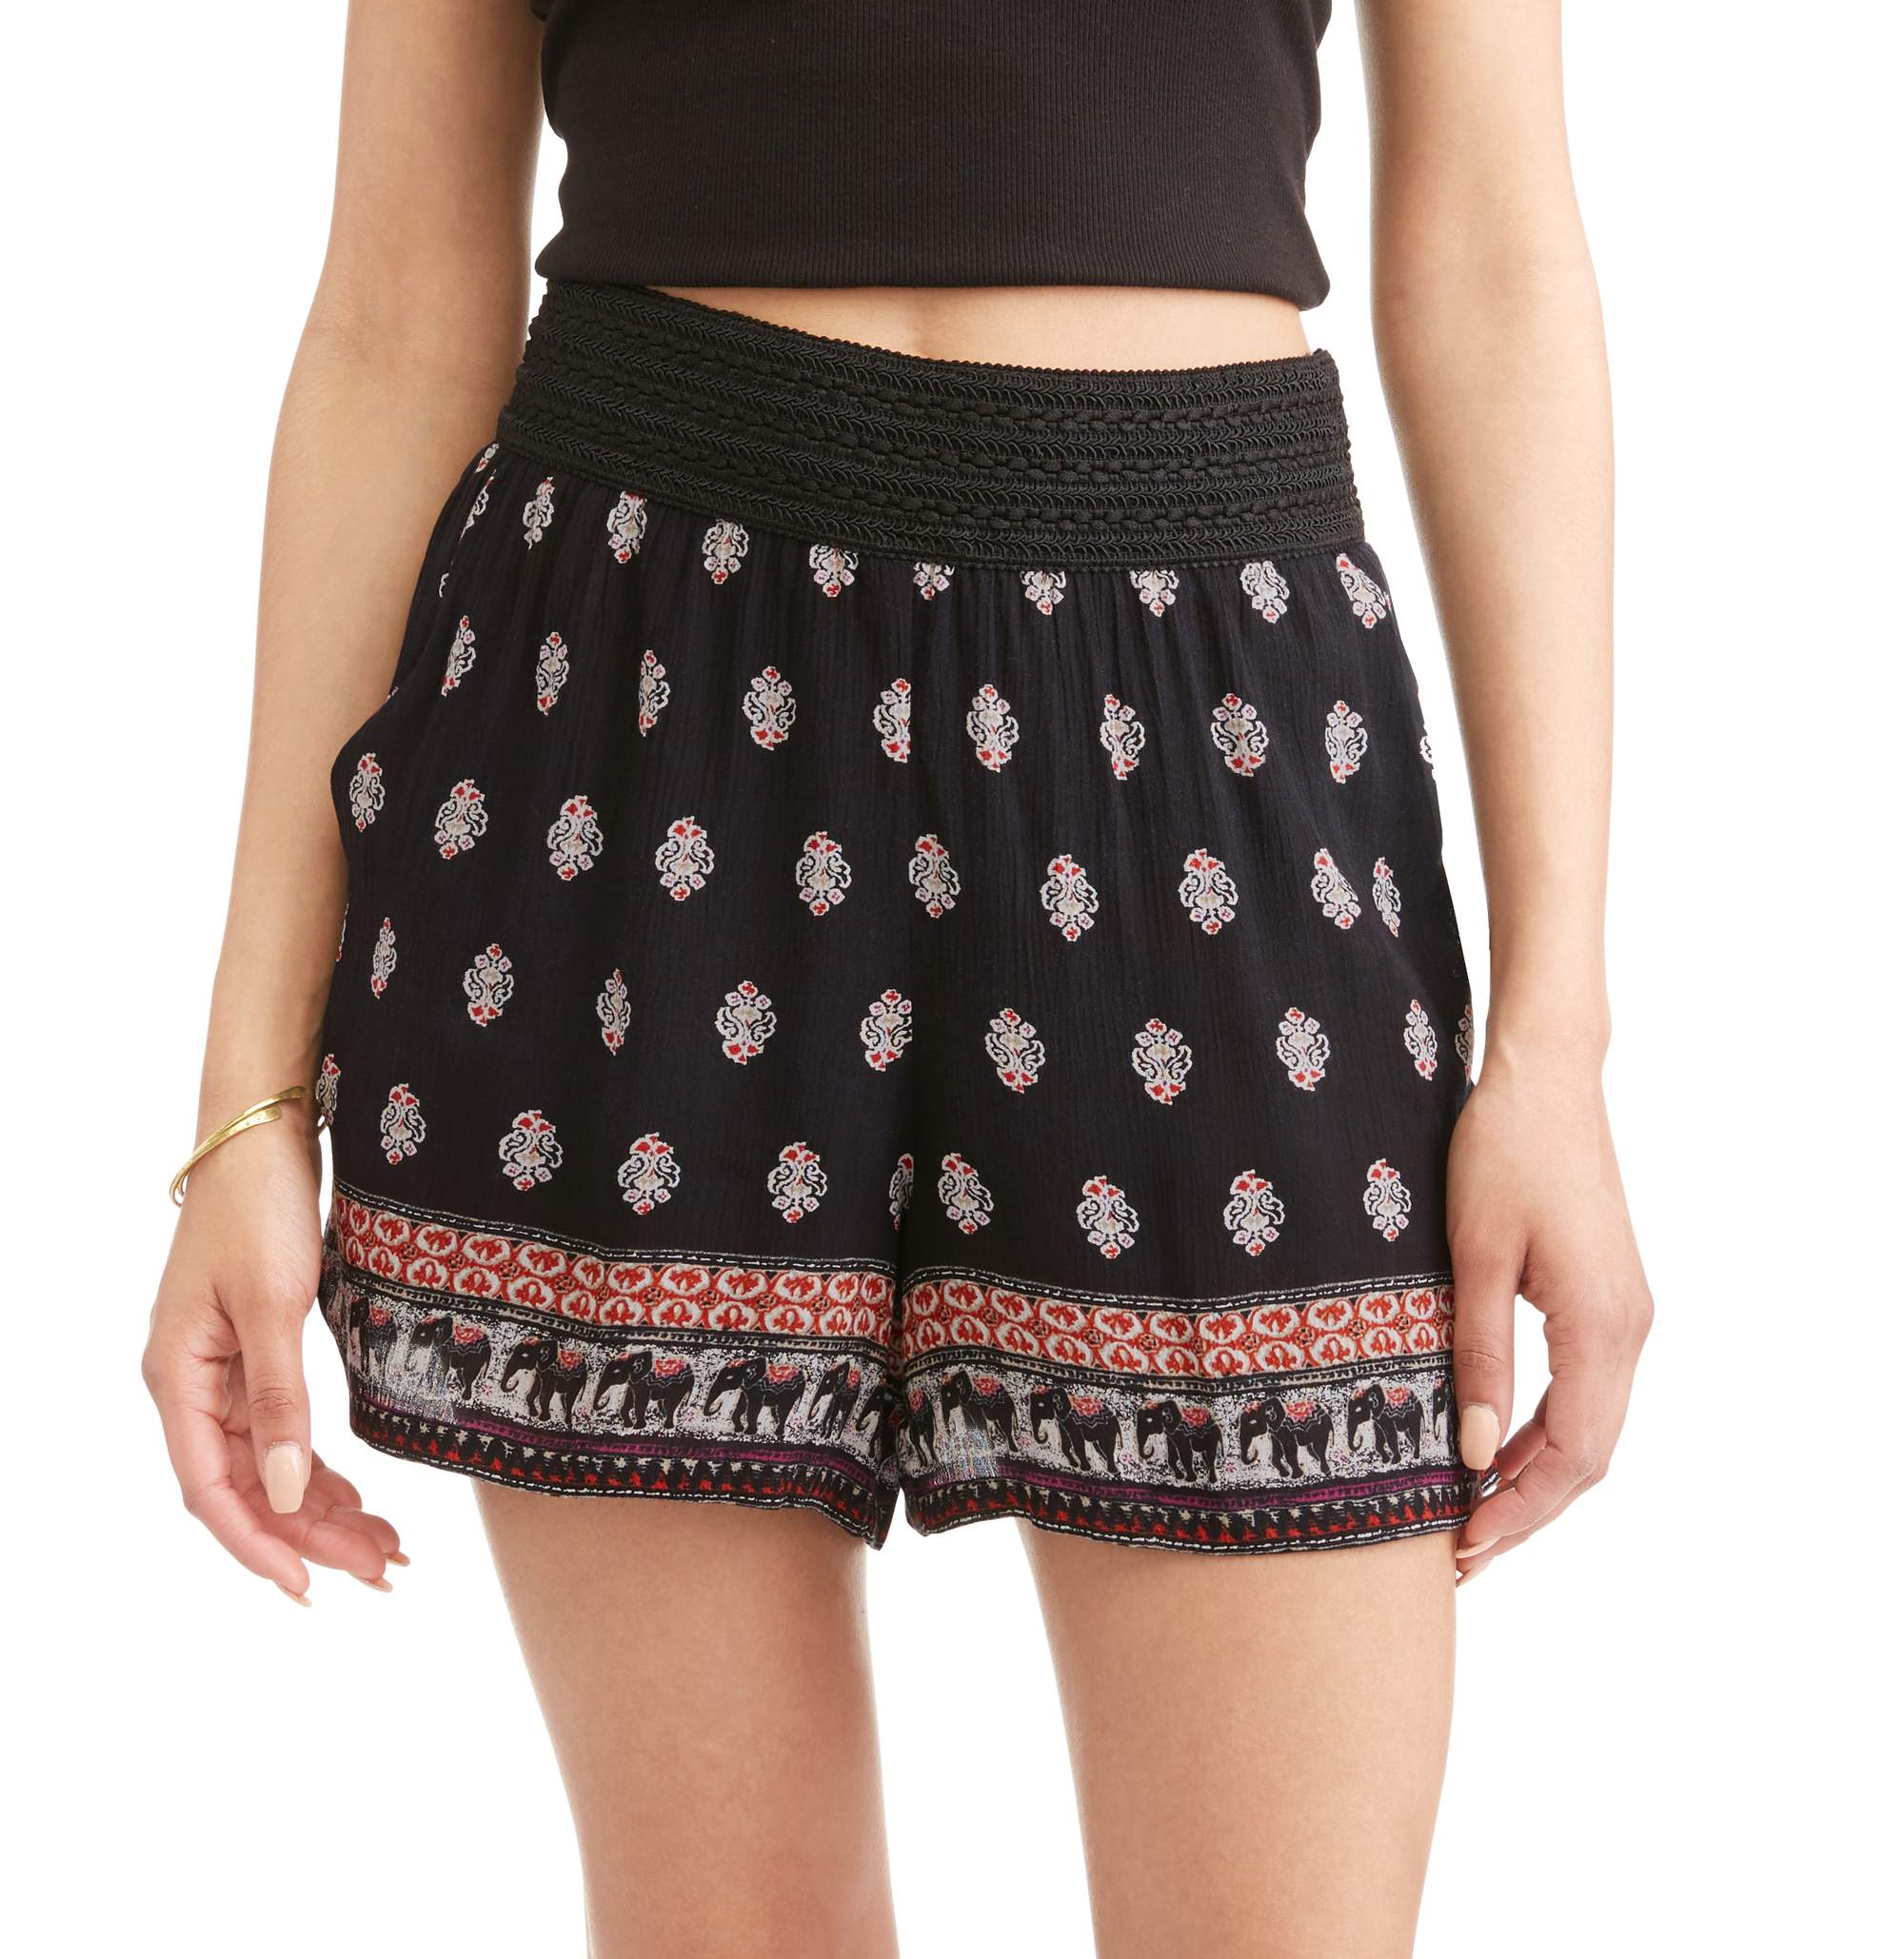 French Laundry Women's Printed Shorts with Crochet Waist Detail